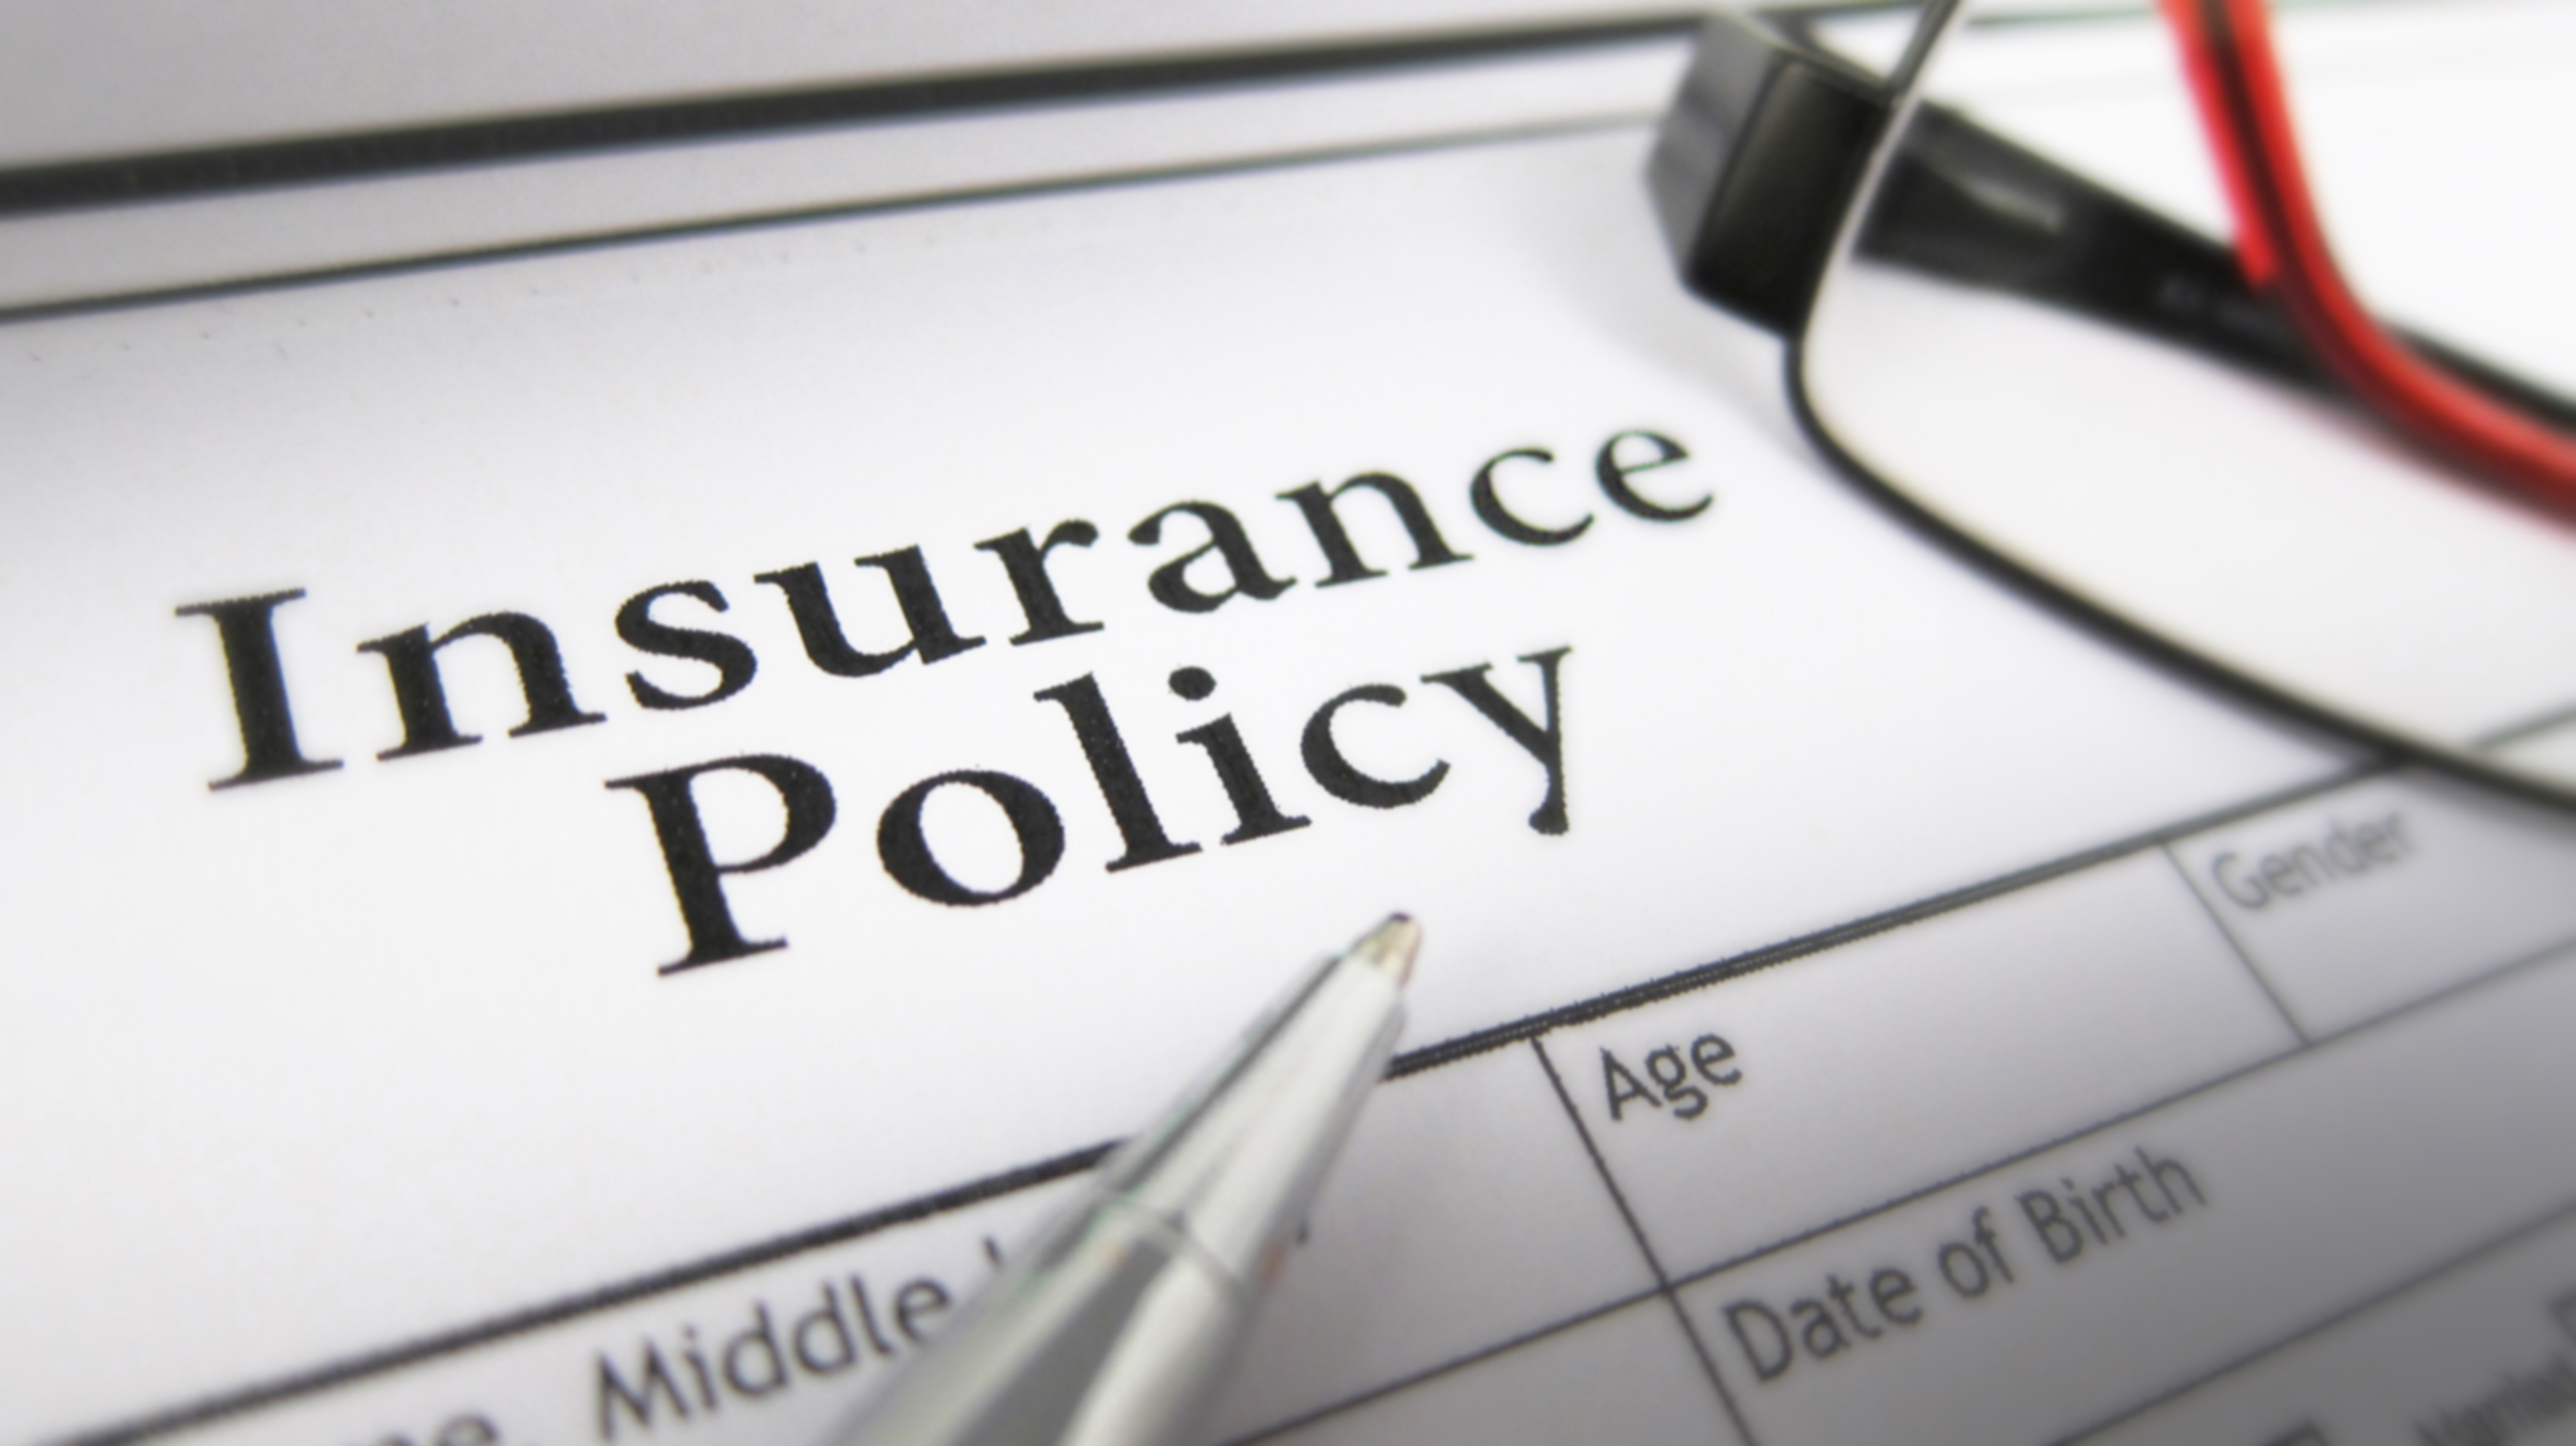 Speciality Insurance: From International Schools Insurance Policies To Military Insurance